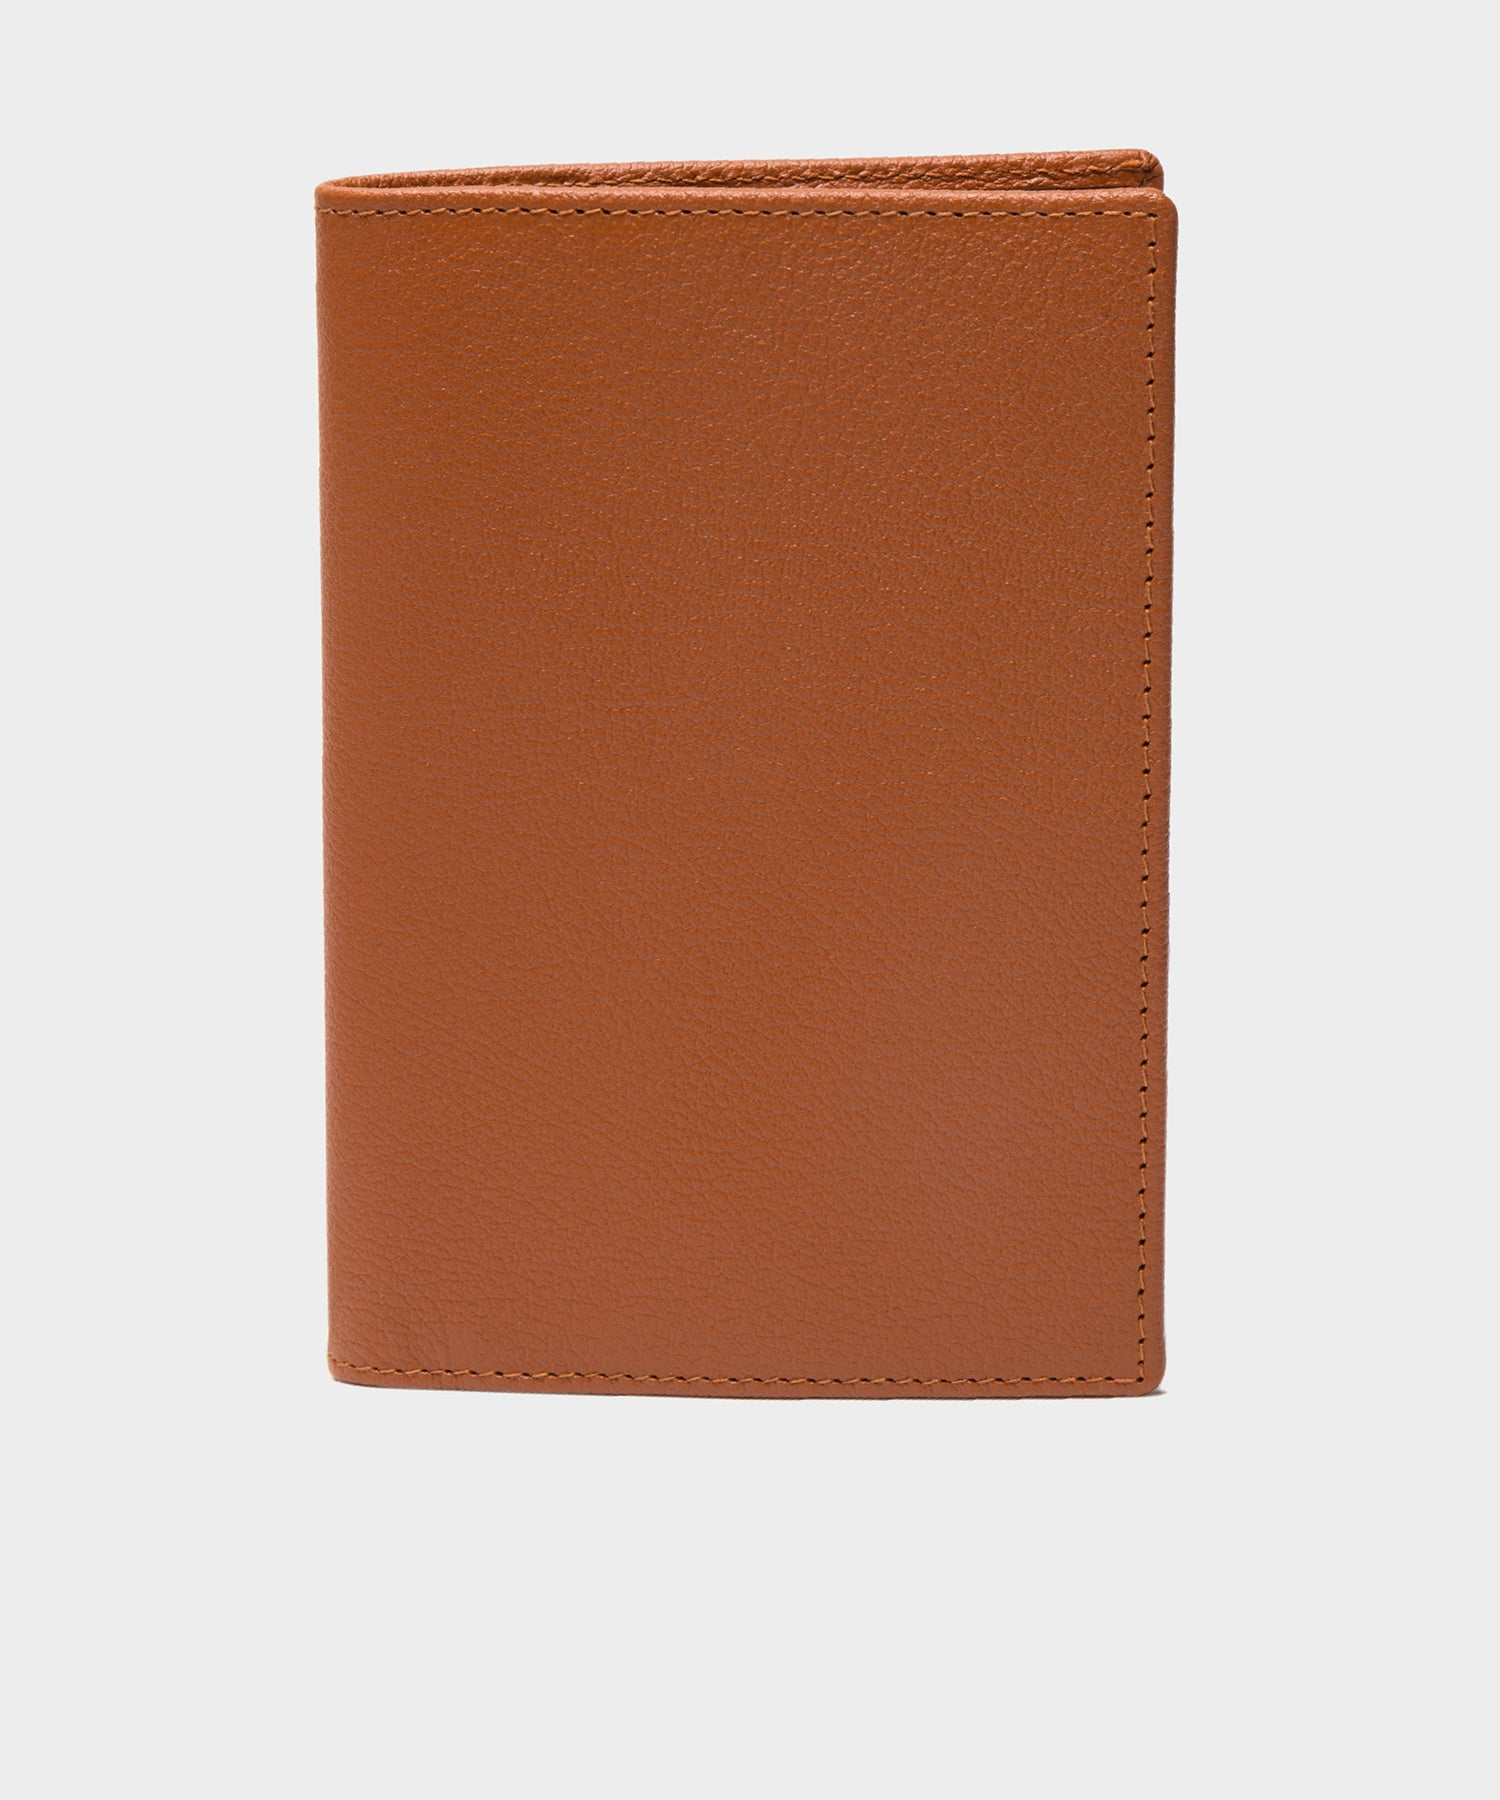 Ettinger Capra Passport Case in Tan